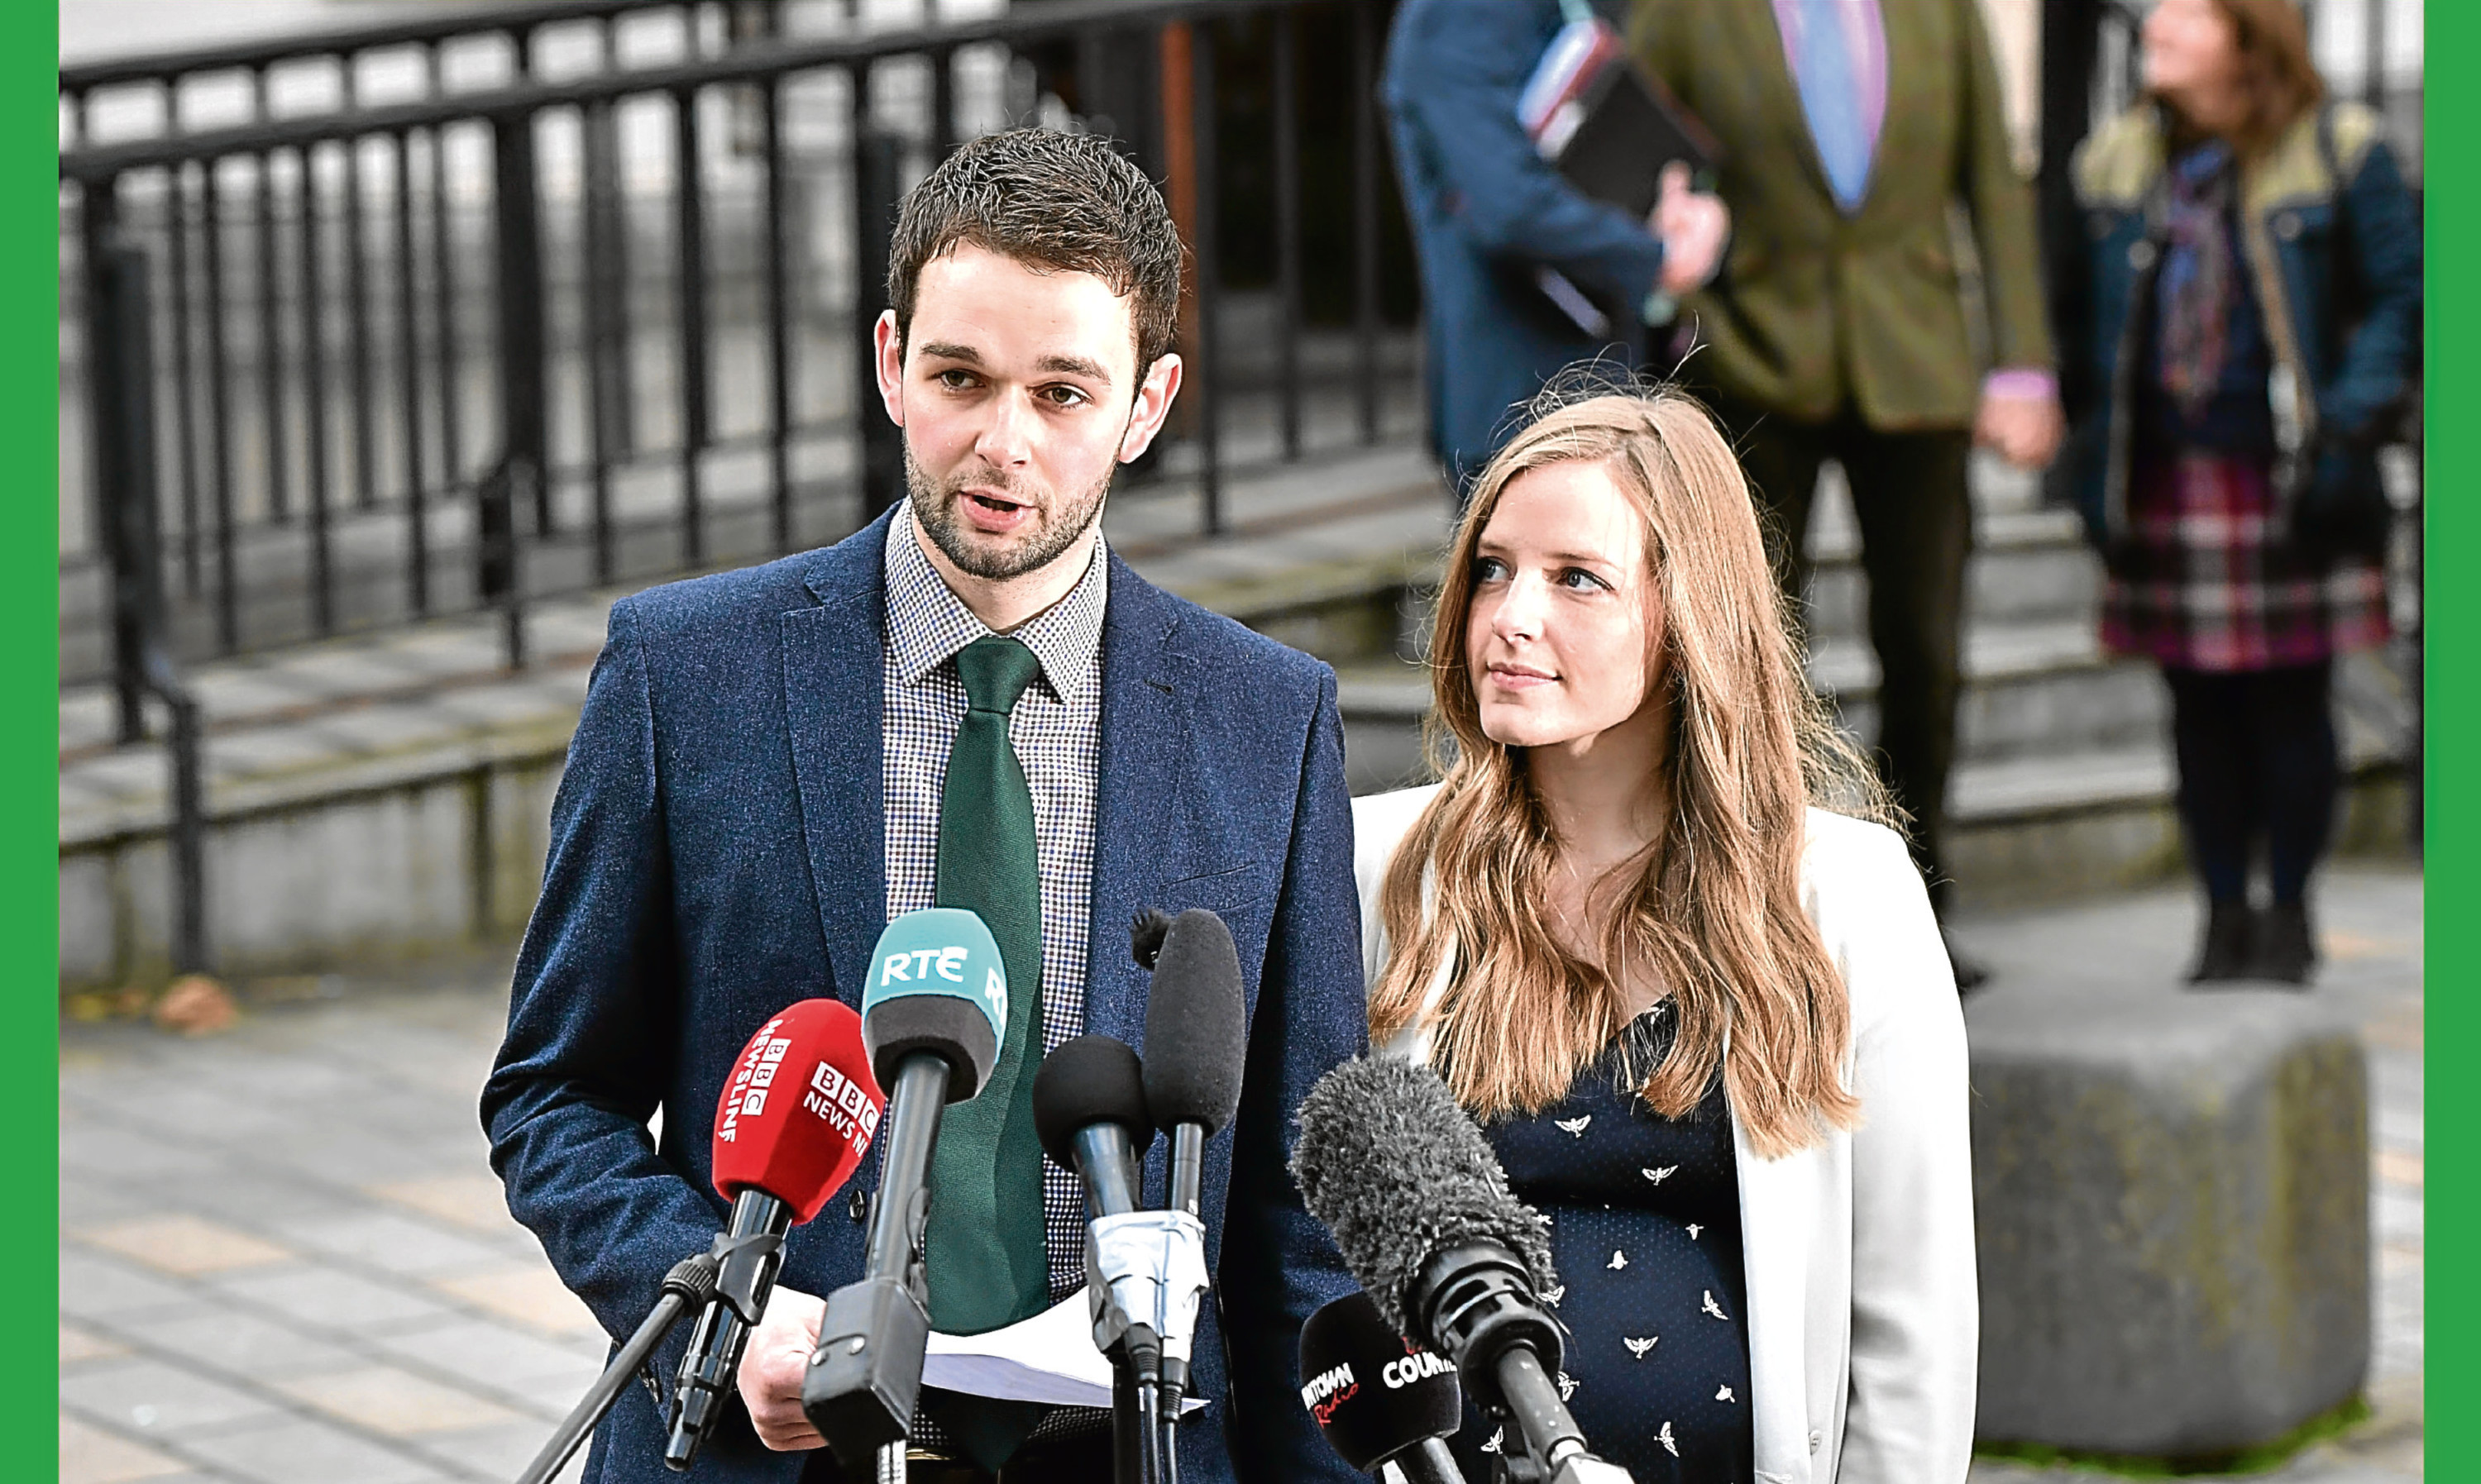 Daniel McArthur, managing director of Ashers Bakery and his wife Amy McArthur speak outside Belfast high court.